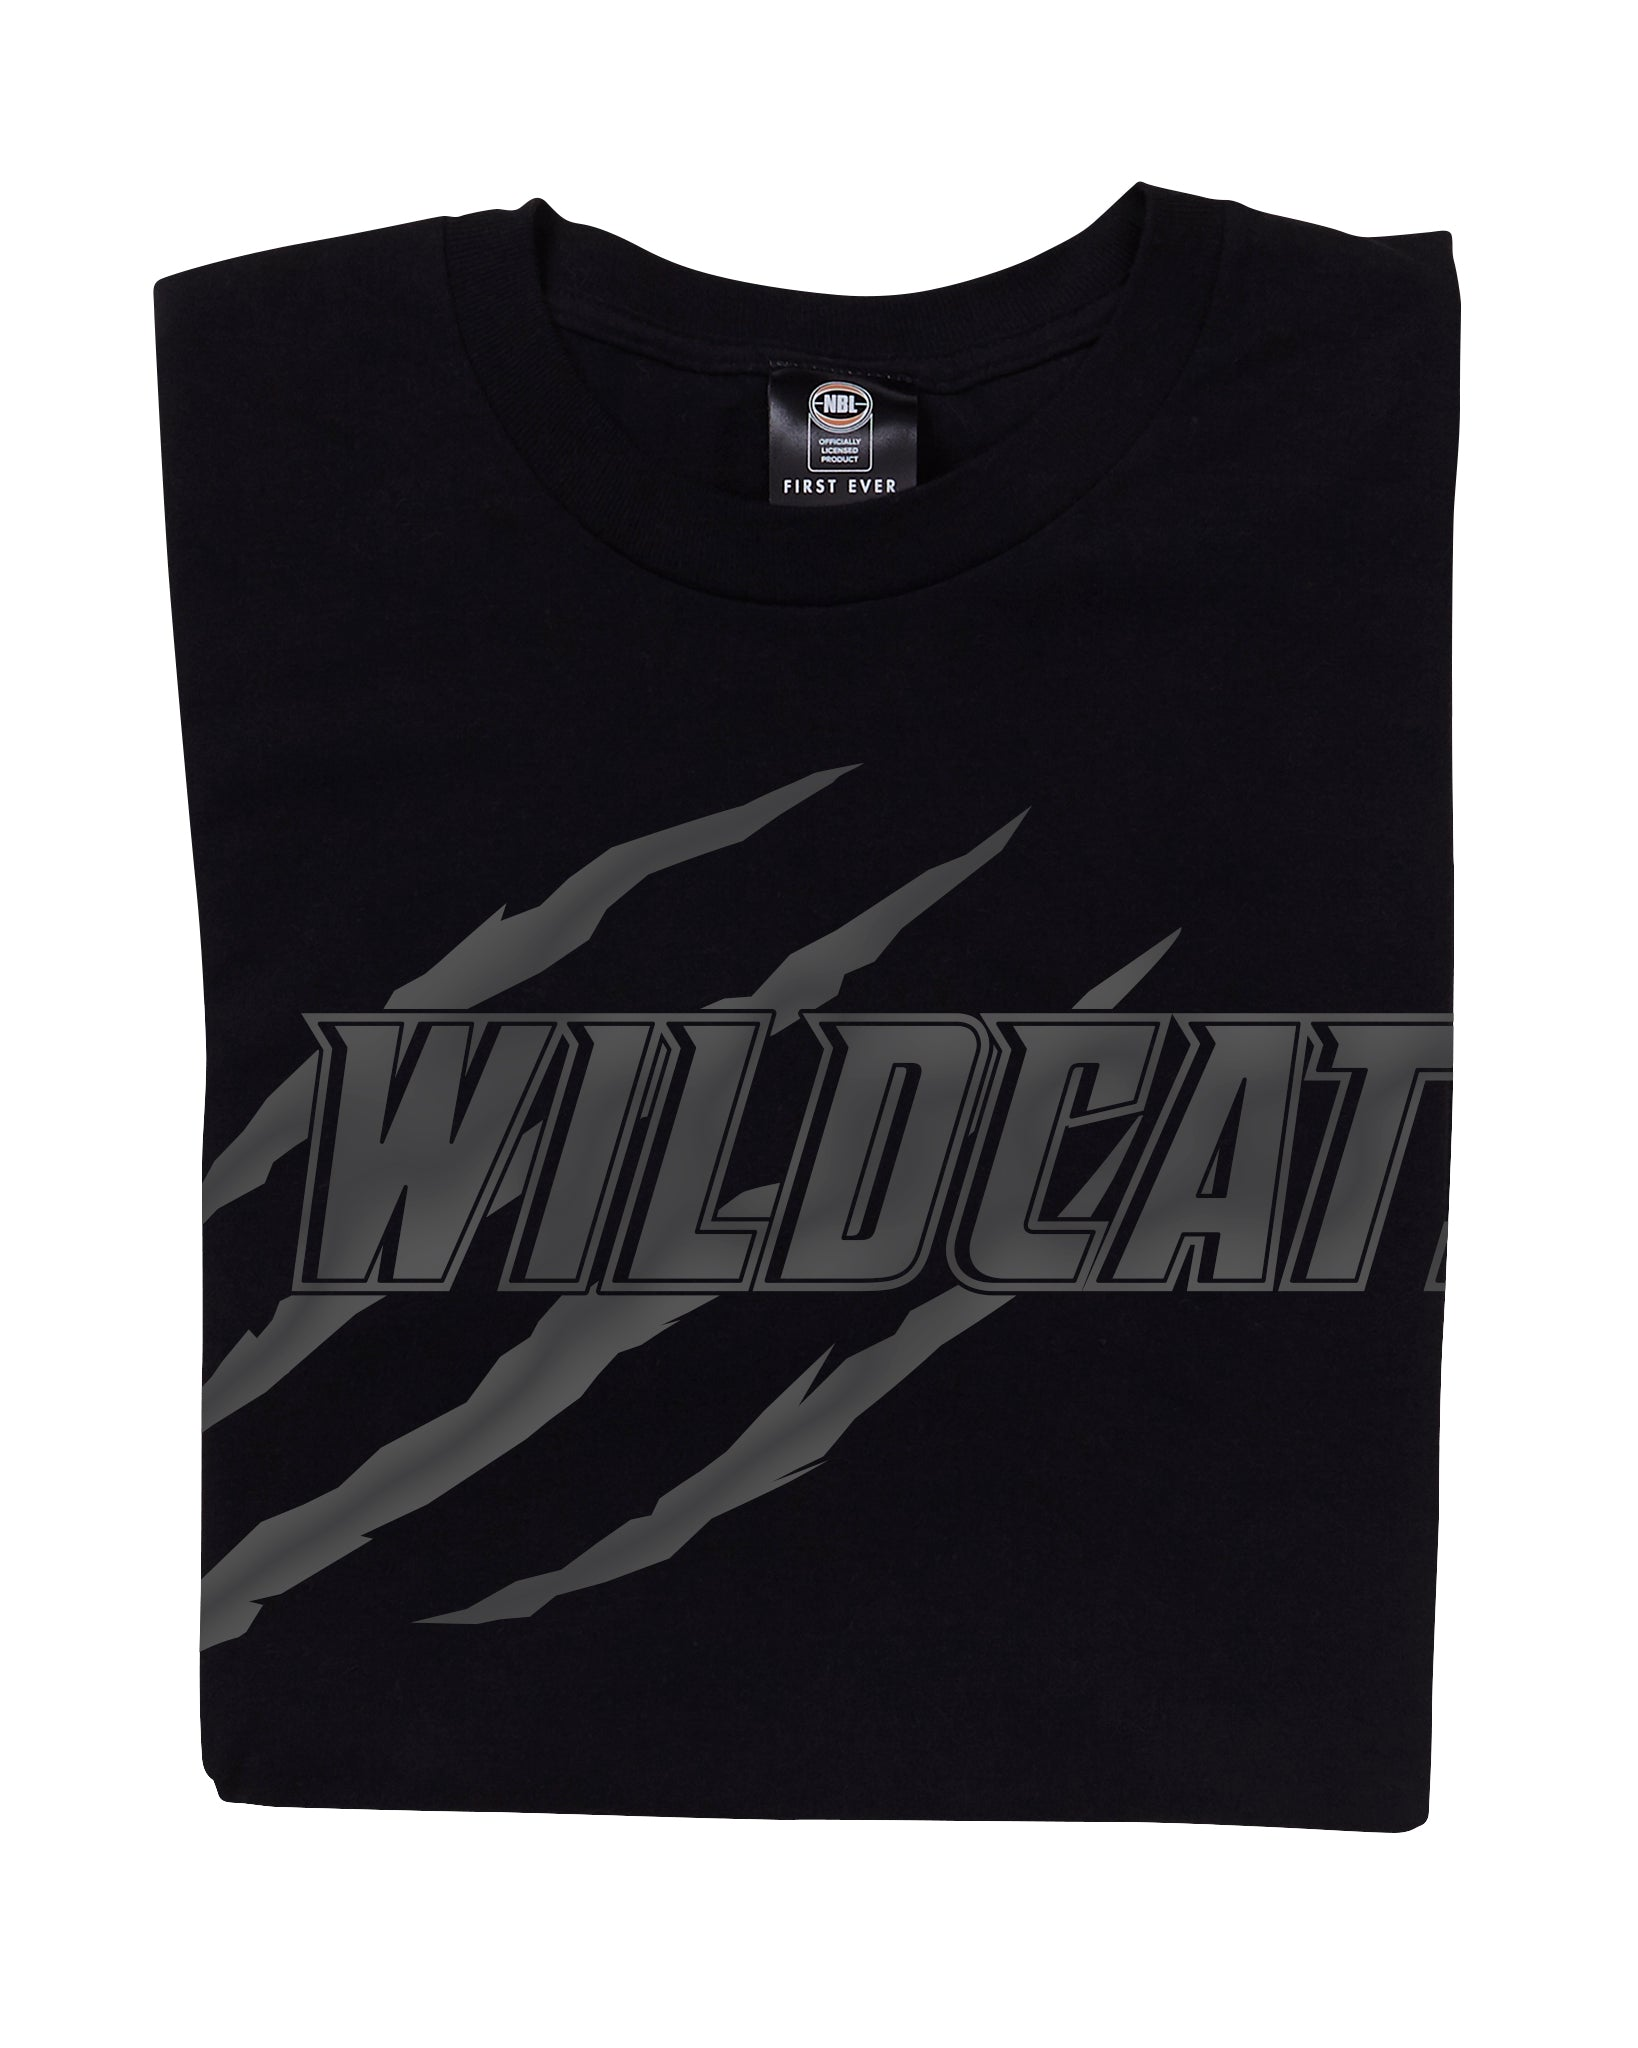 Perth Wildcats 19/20 Blackout Tee